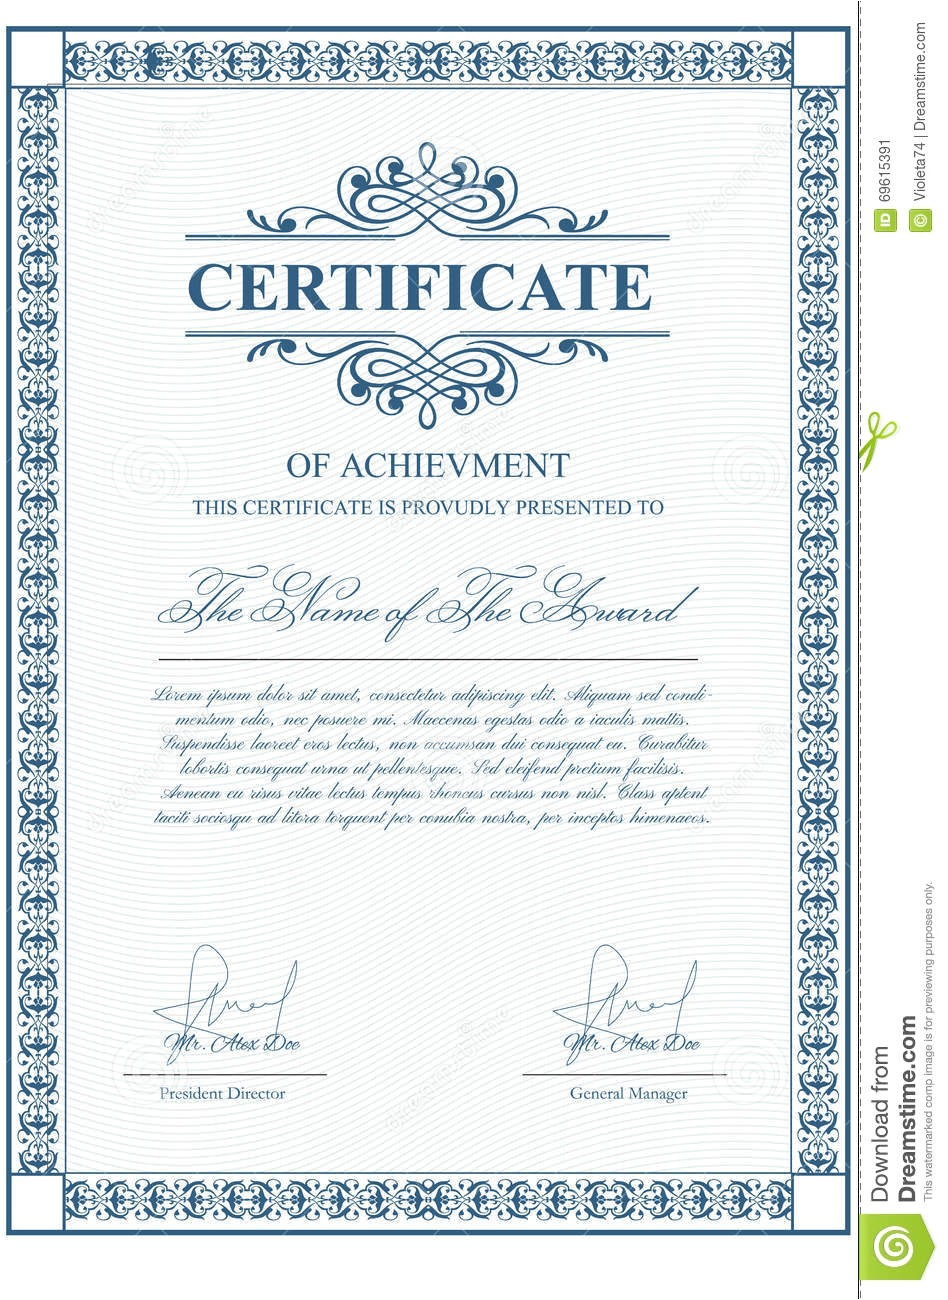 stock illustration certificate template guilloche elements blue diploma border design personal conferment vector layout award patent image69615391